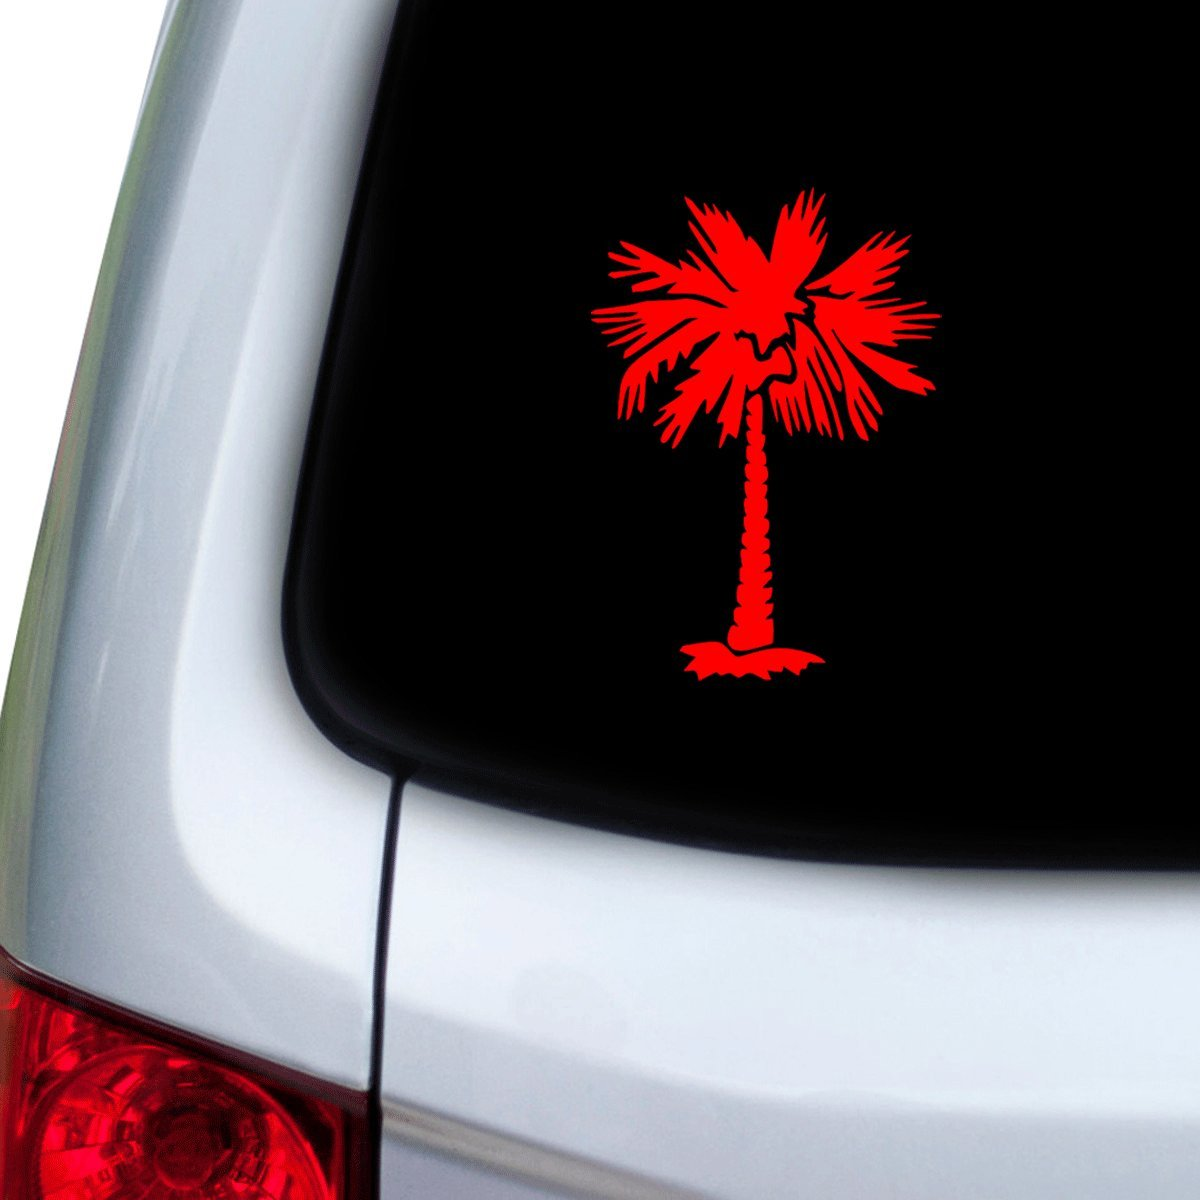 StickAny Car and Auto Decal Series Fun Palm Tree Sticker for Windows Hoods Doors Red